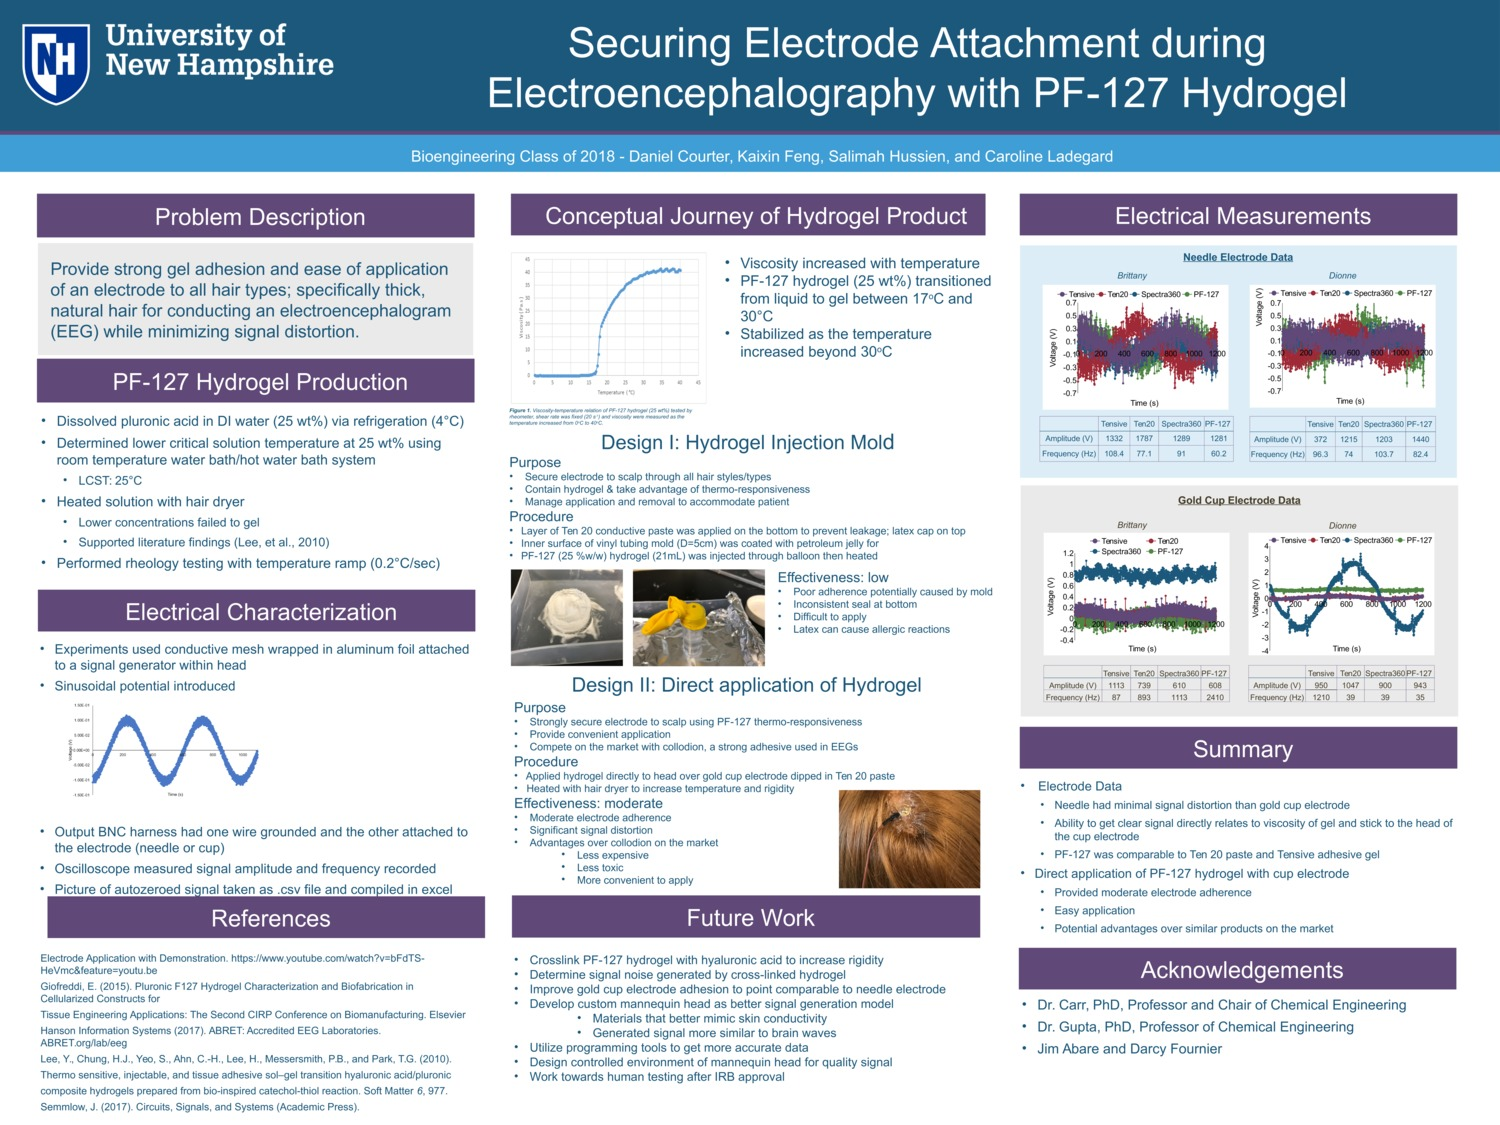 Securing Electrode Attachment During Electroencephalography With Pf-127 Hydrogel by kf2000